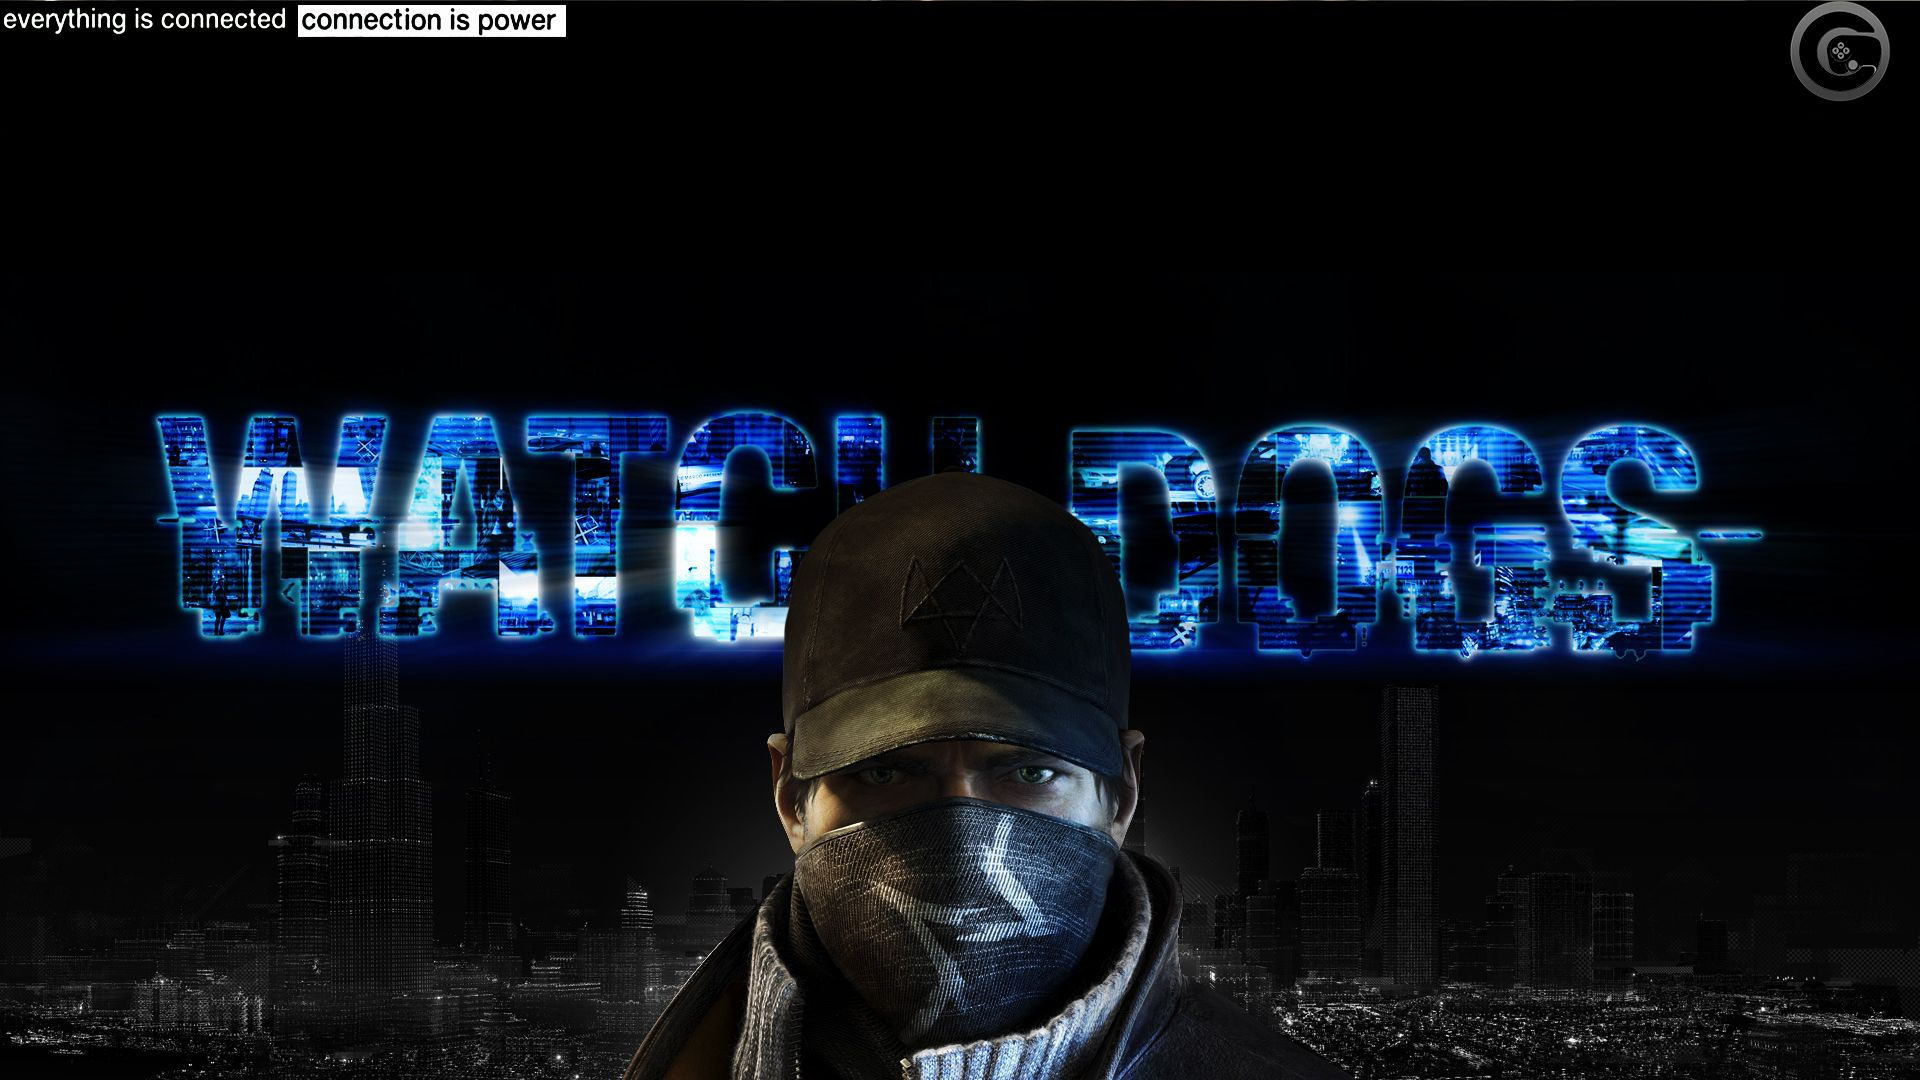 Watch dogs hd wallpapers watch dogs wallpapers pinterest dog watch dogs hd wallpapers voltagebd Gallery